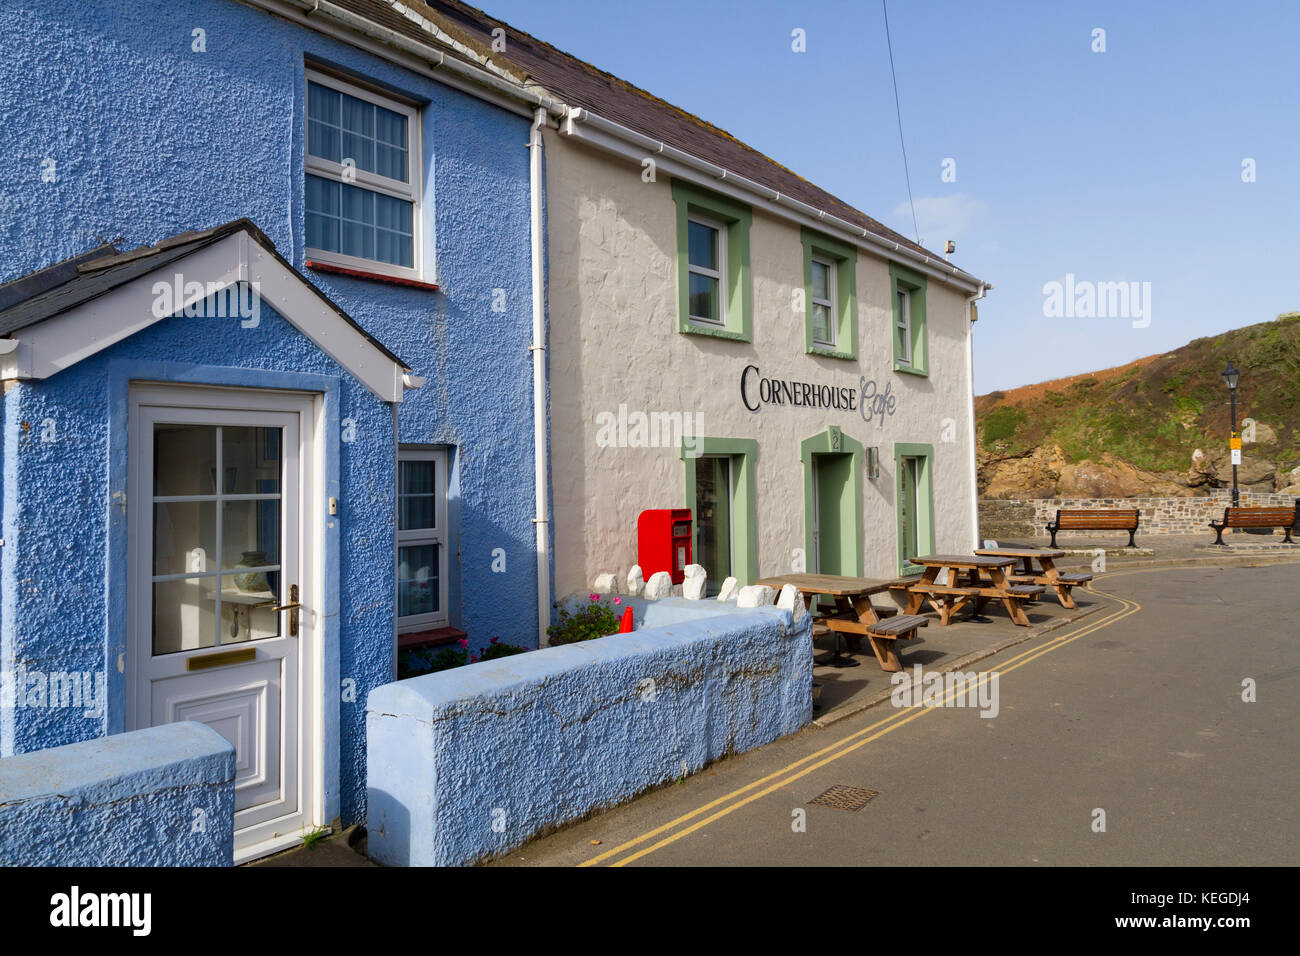 The Cornerhouse cafe in the small coastal village of Little Haven, Pembroke Wales - Stock Image